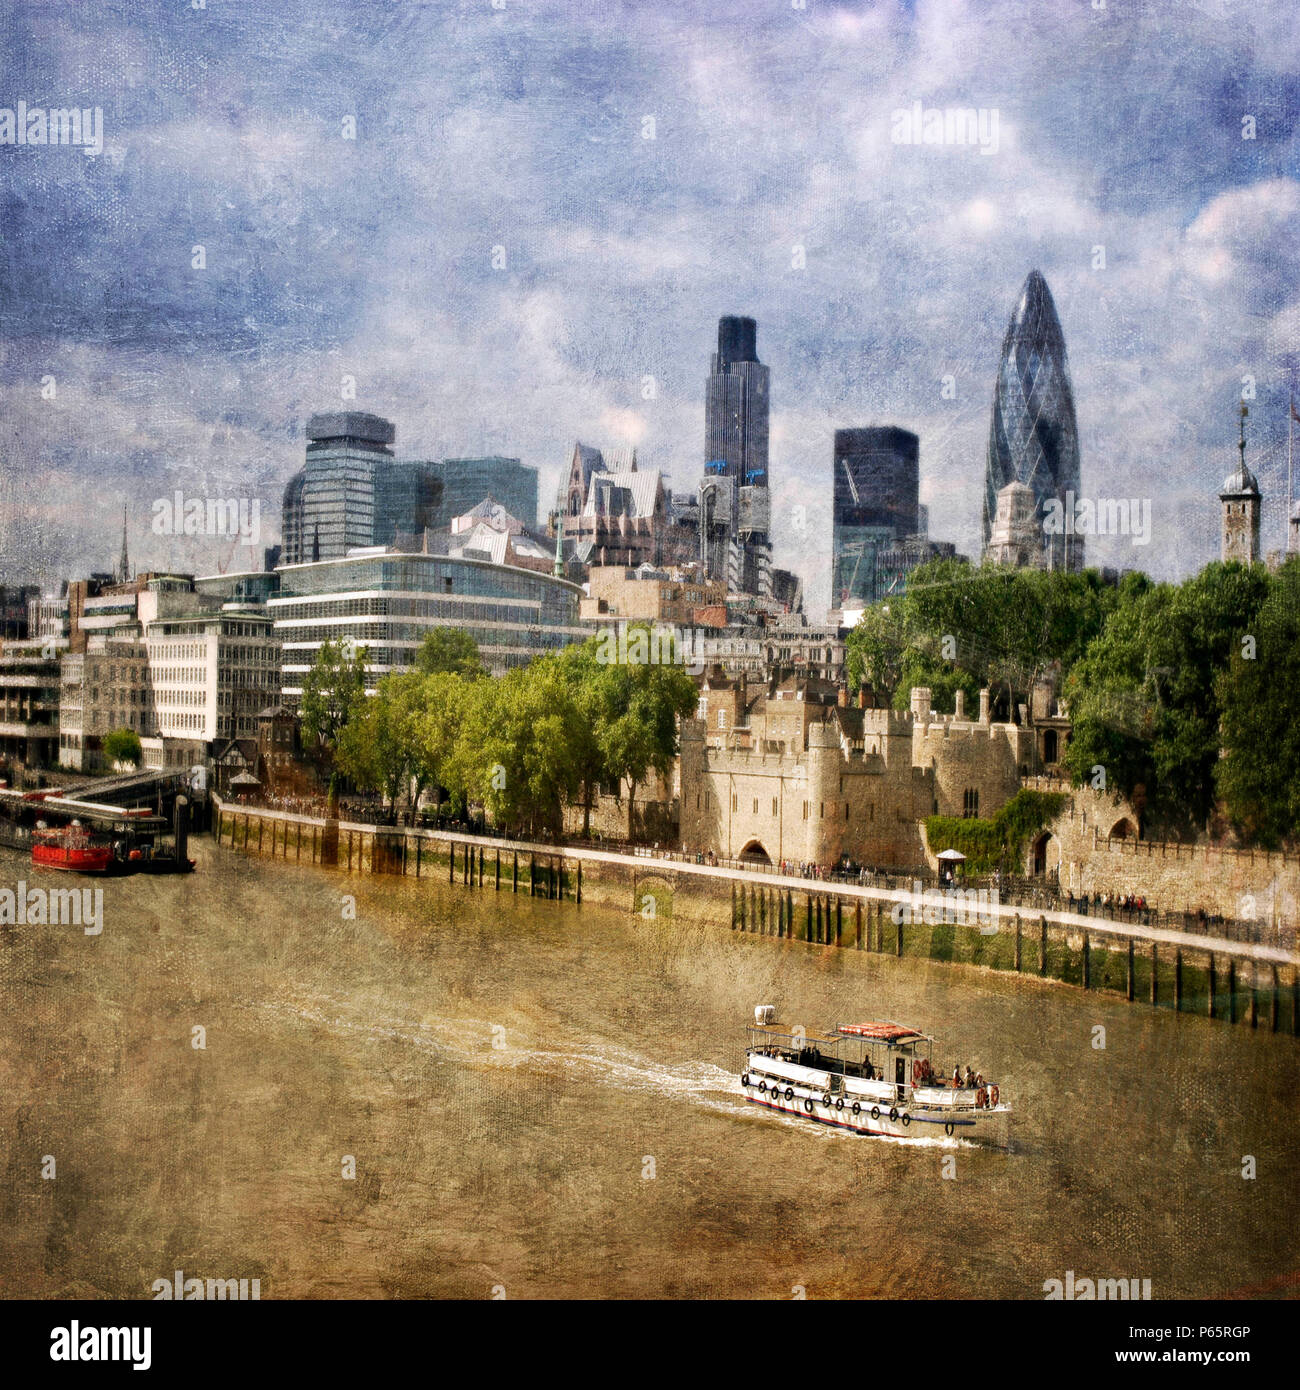 London City Skyline with Gherkin and Tower of London, London, UK - Stock Image